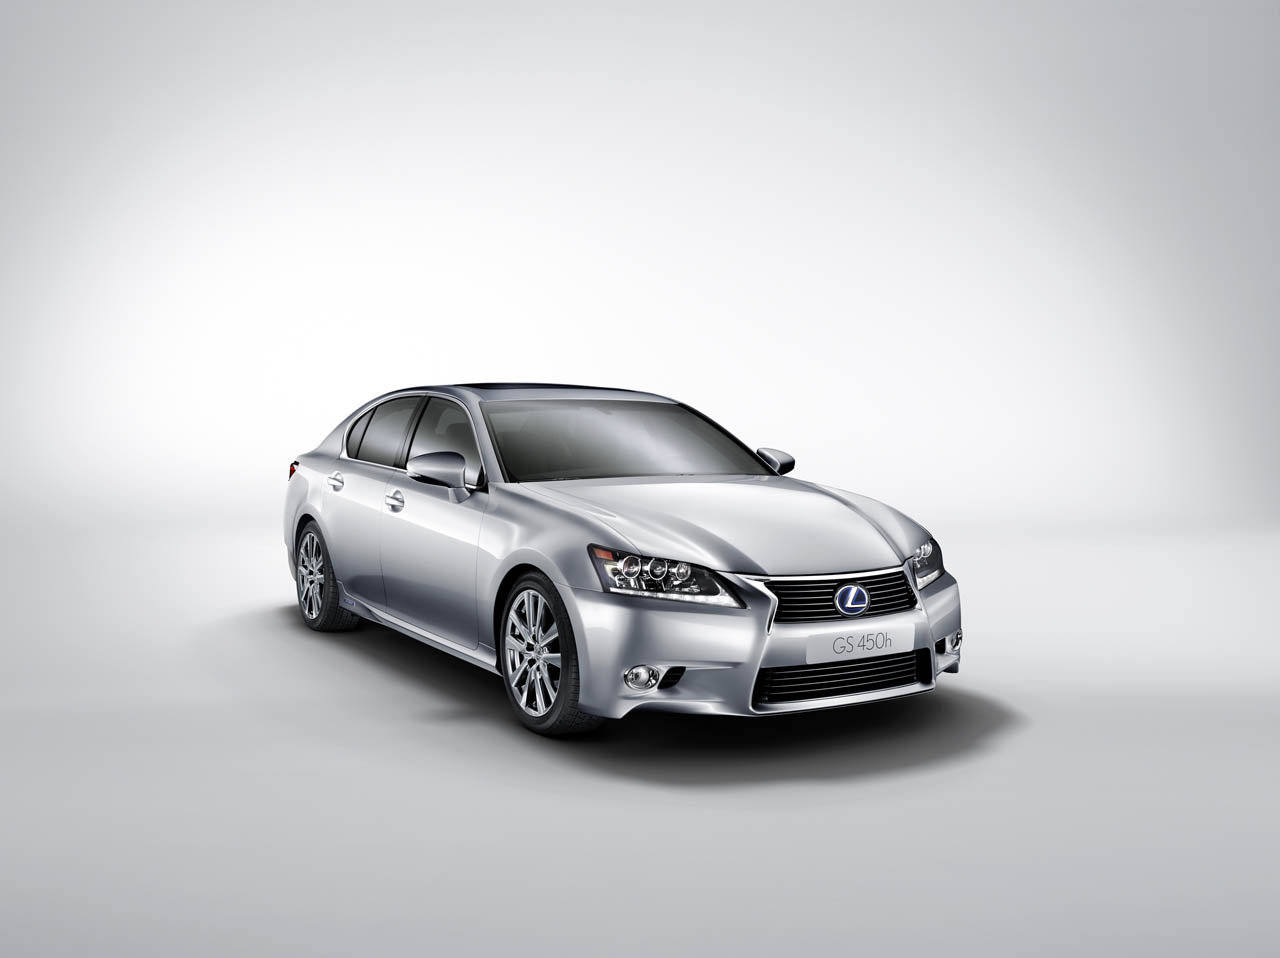 2013 Lexus GS 450h Hybrid Revealed w/ Promo Video